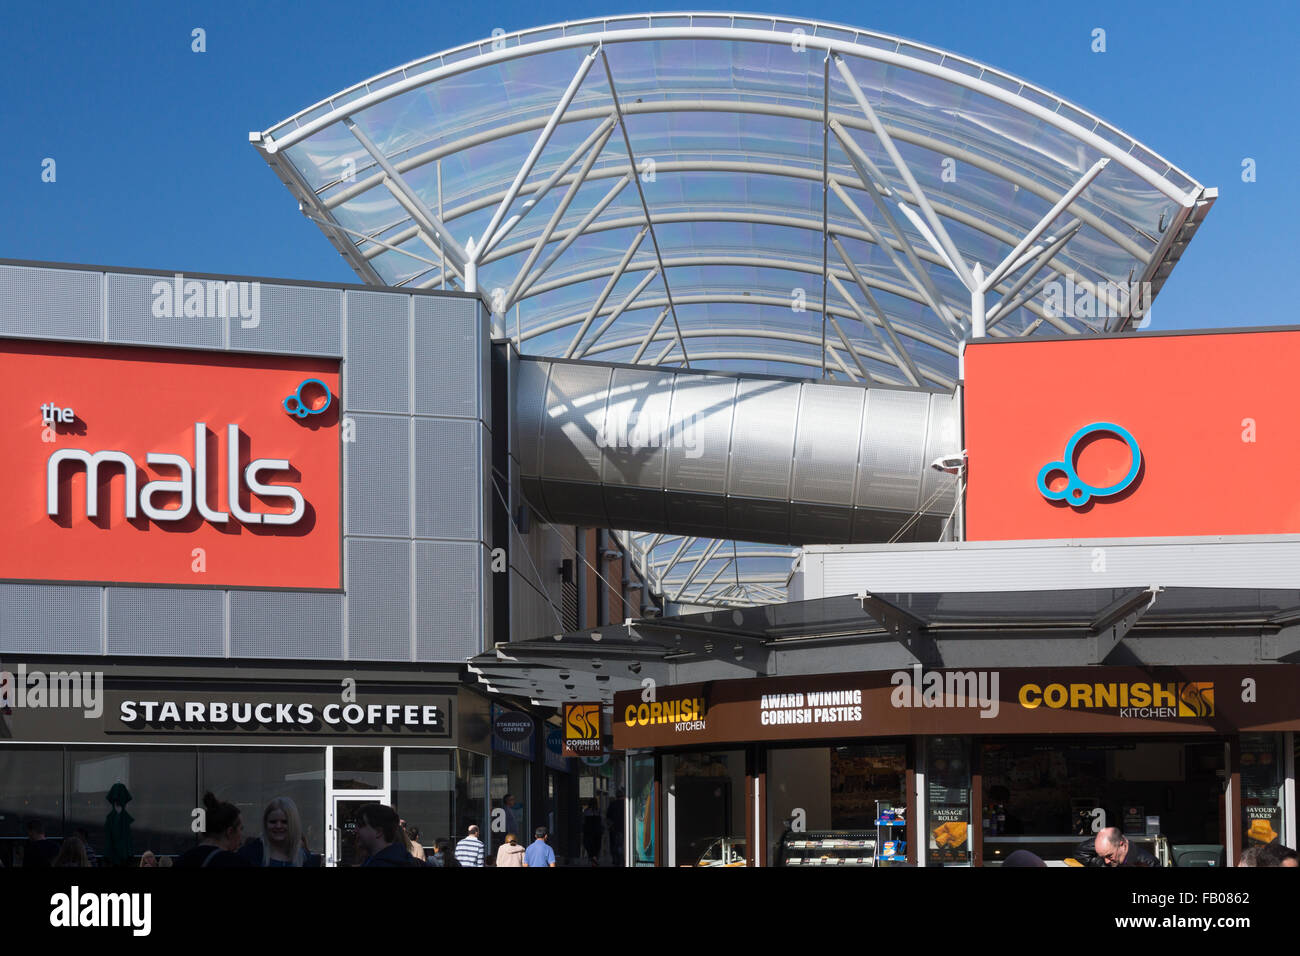 The recently refurbished 'The Malls' in Basingstoke - Stock Image